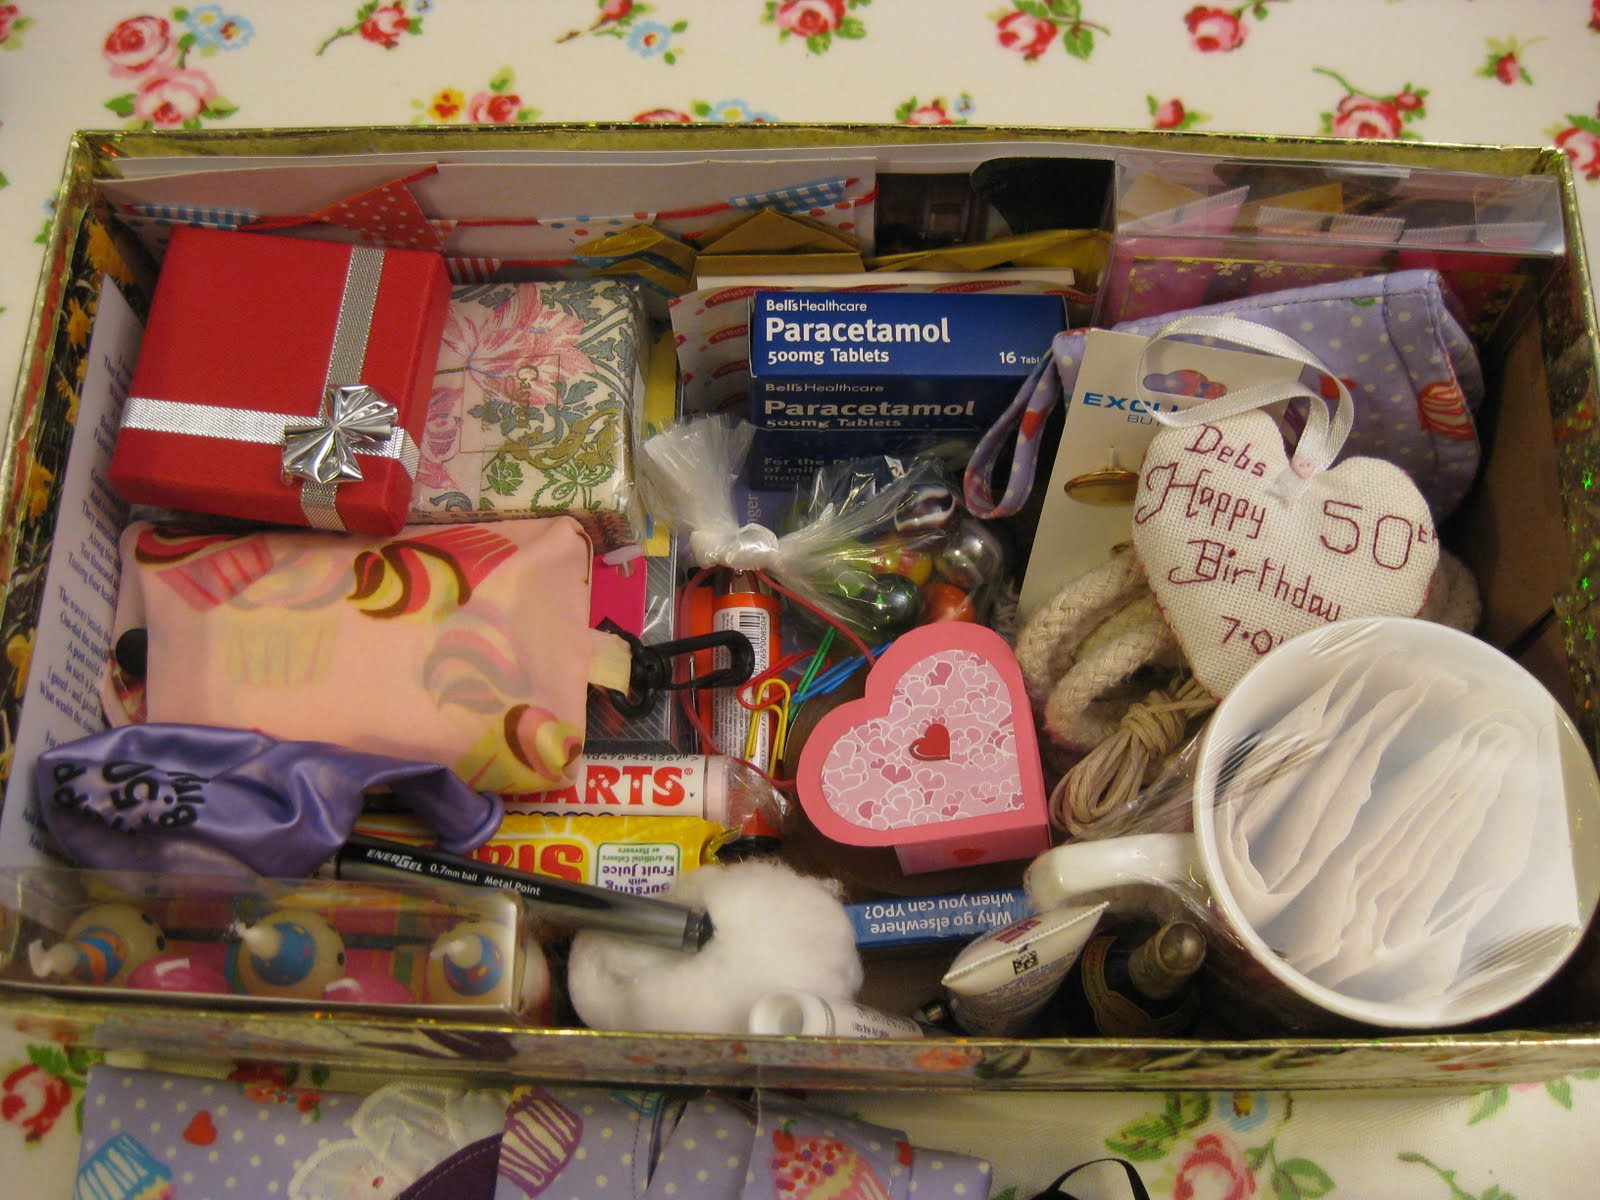 Friend 50Th Birthday Gift Ideas  Crafty Conundrum 50 Small Things for a Special Friends